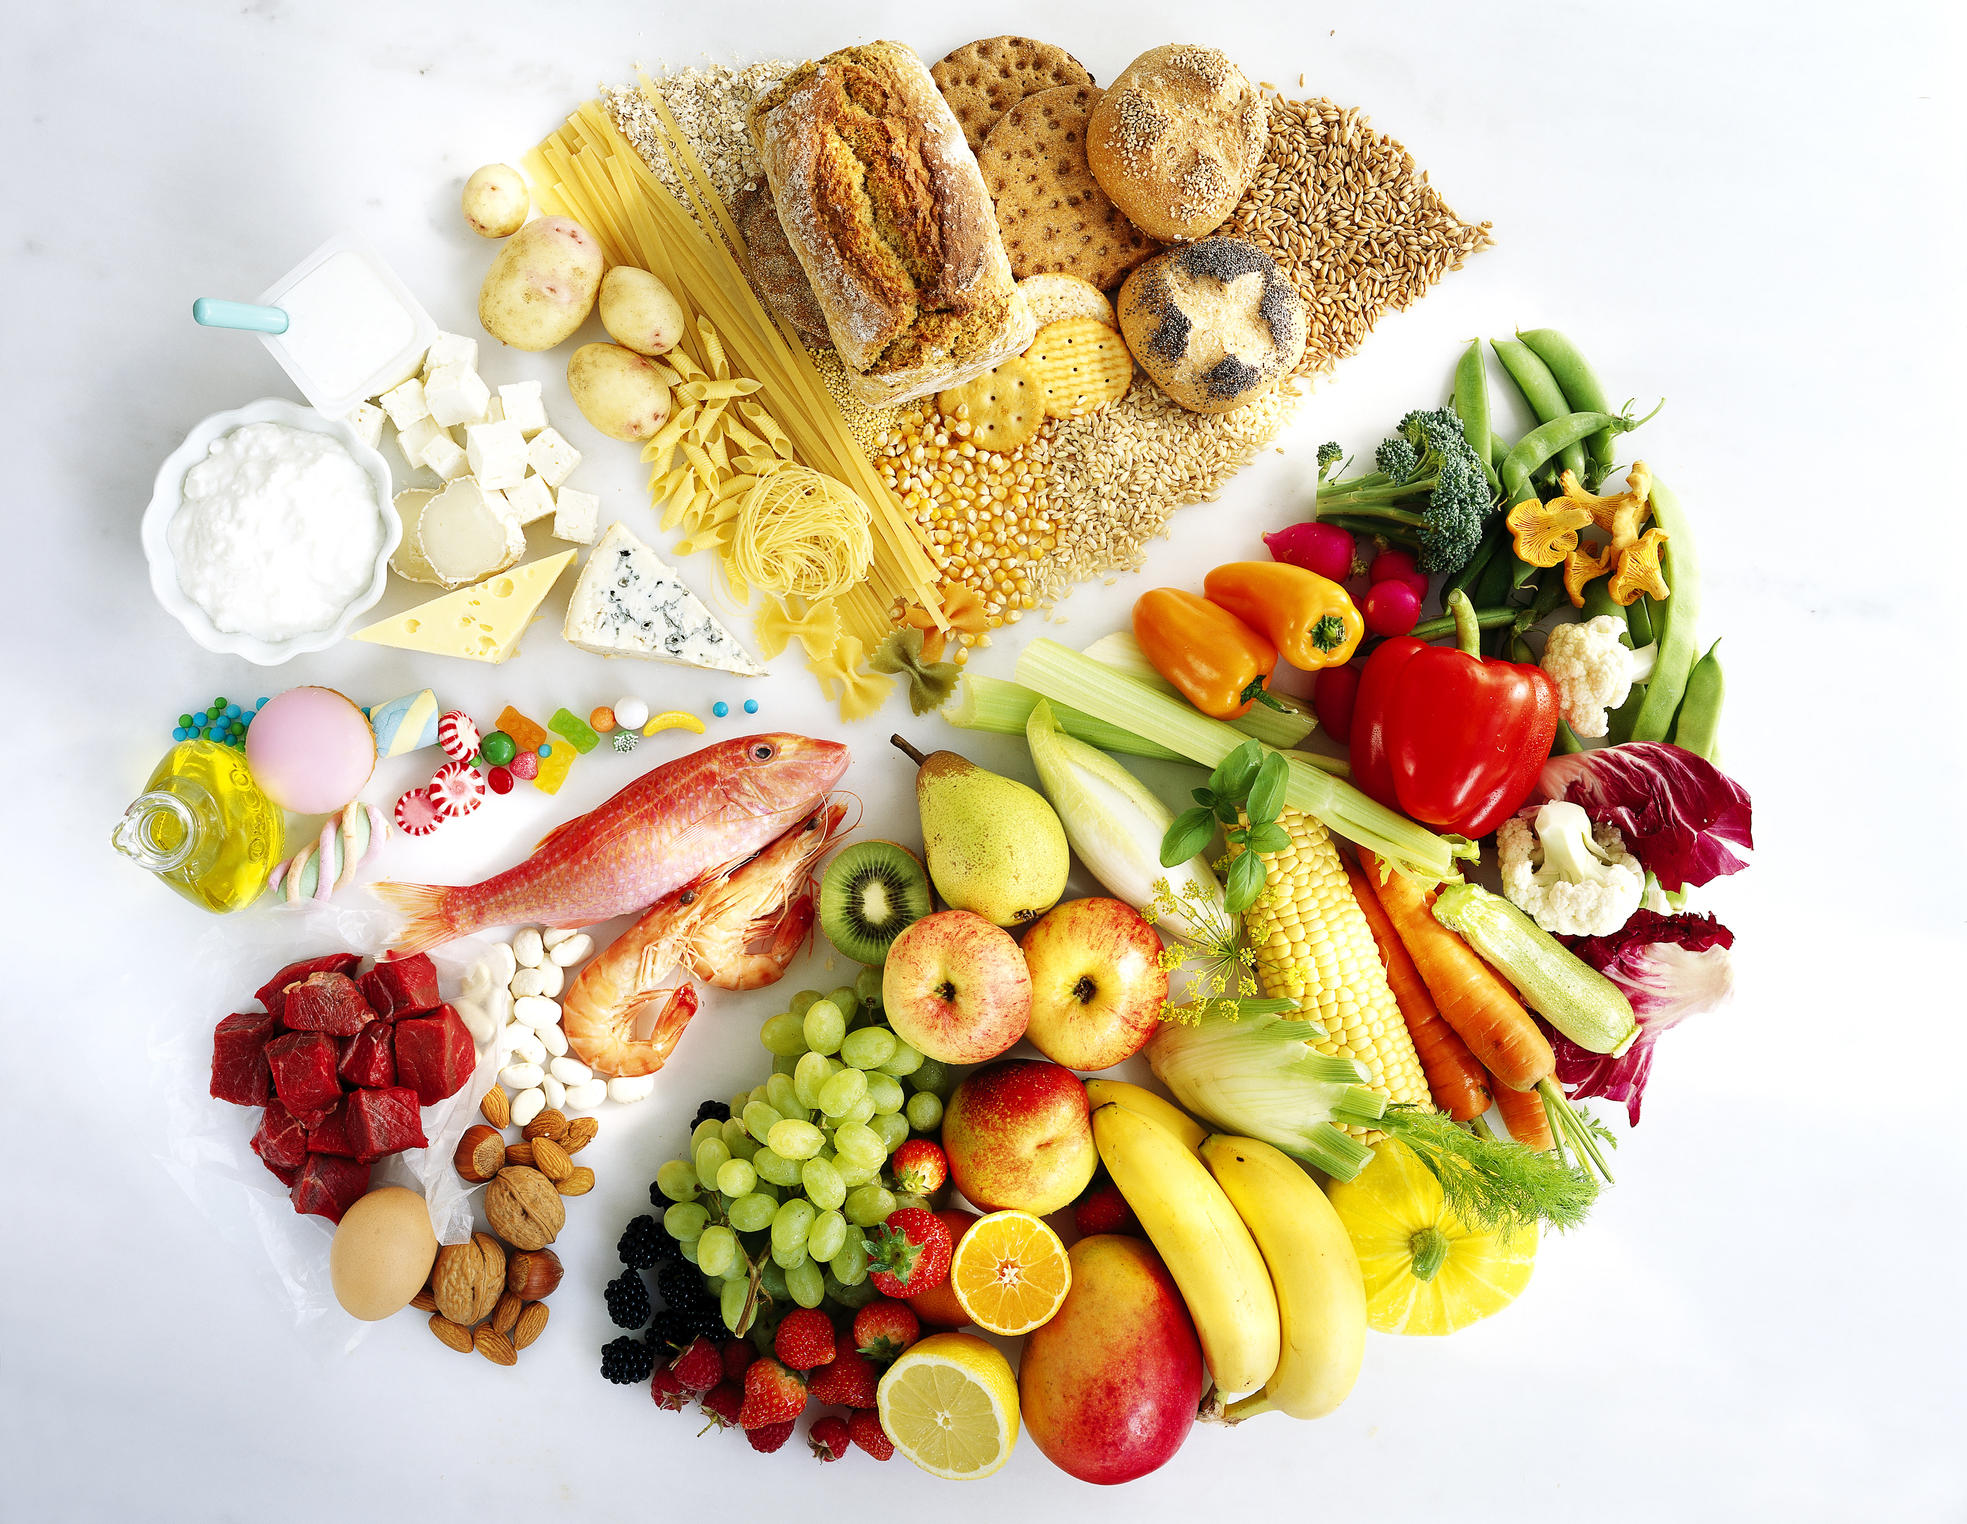 Foods for a balanced diet - showing proportions